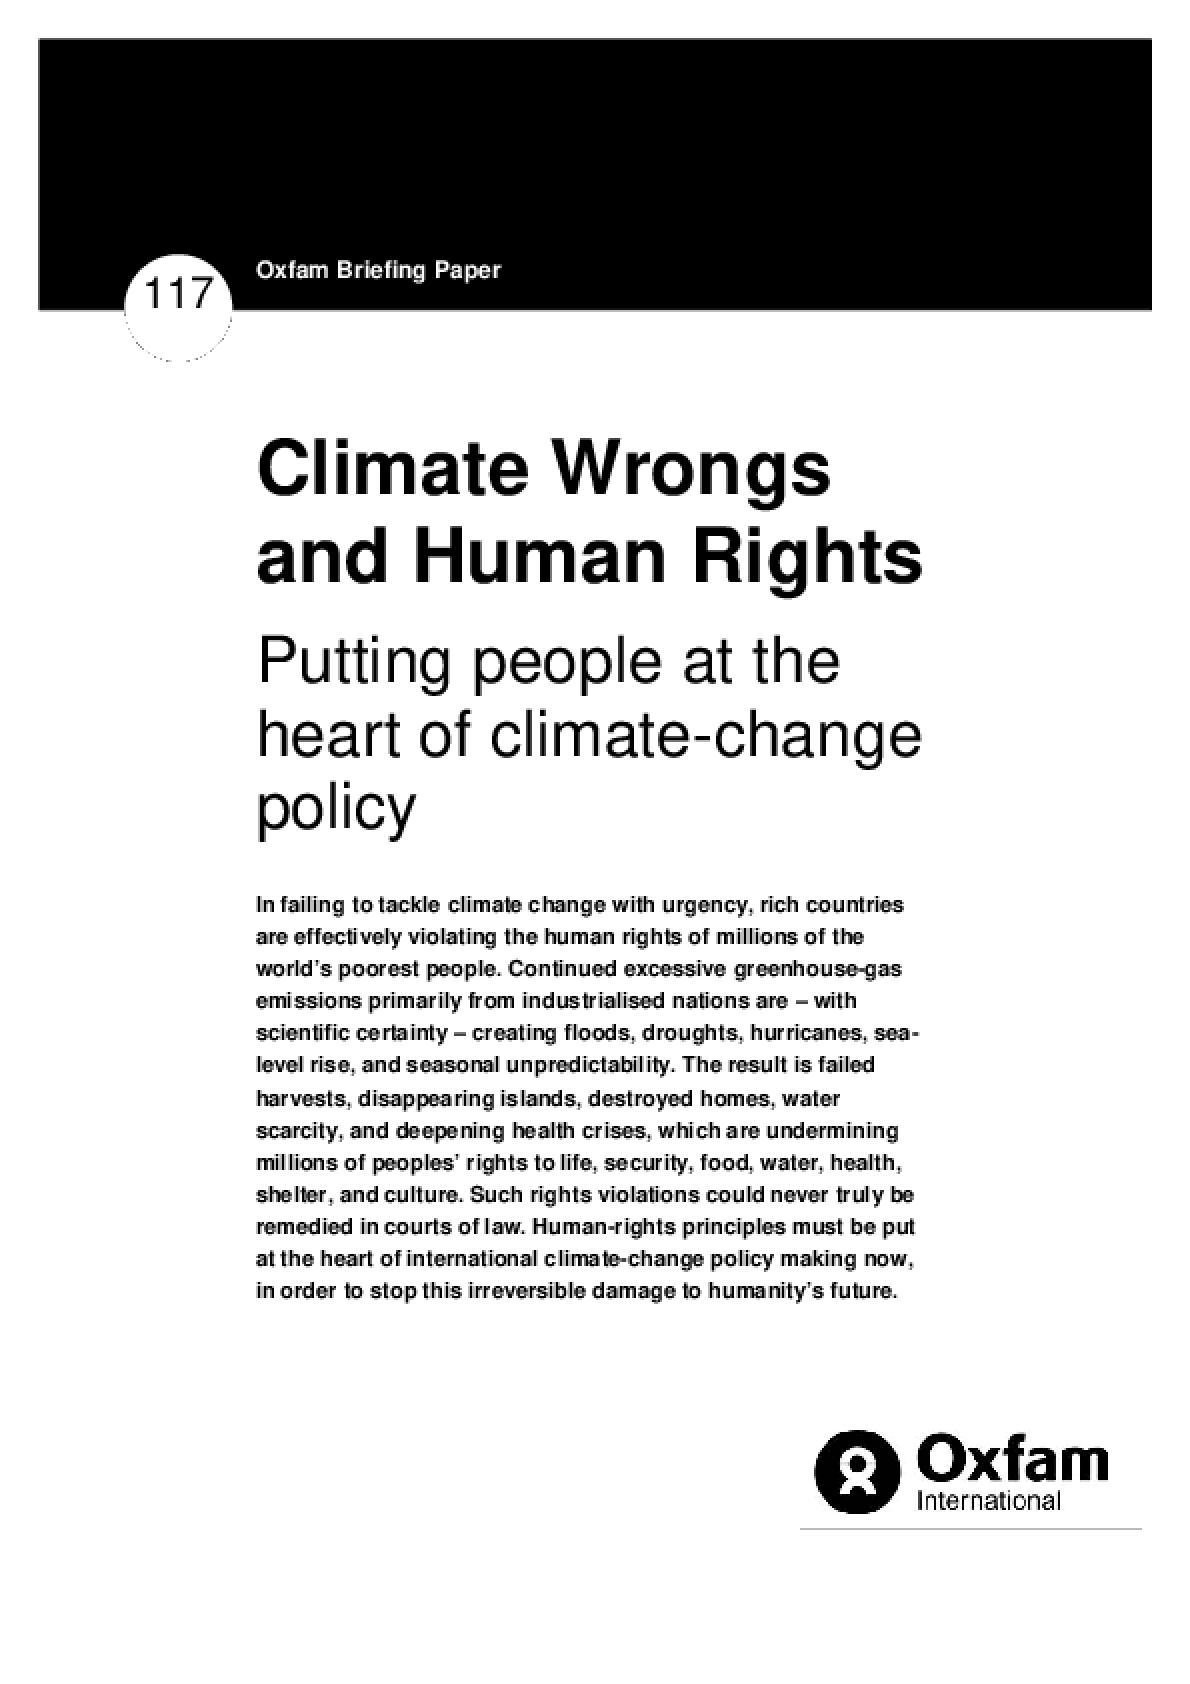 Climate Wrongs and Human Rights: Putting people at the heart of climate change policy